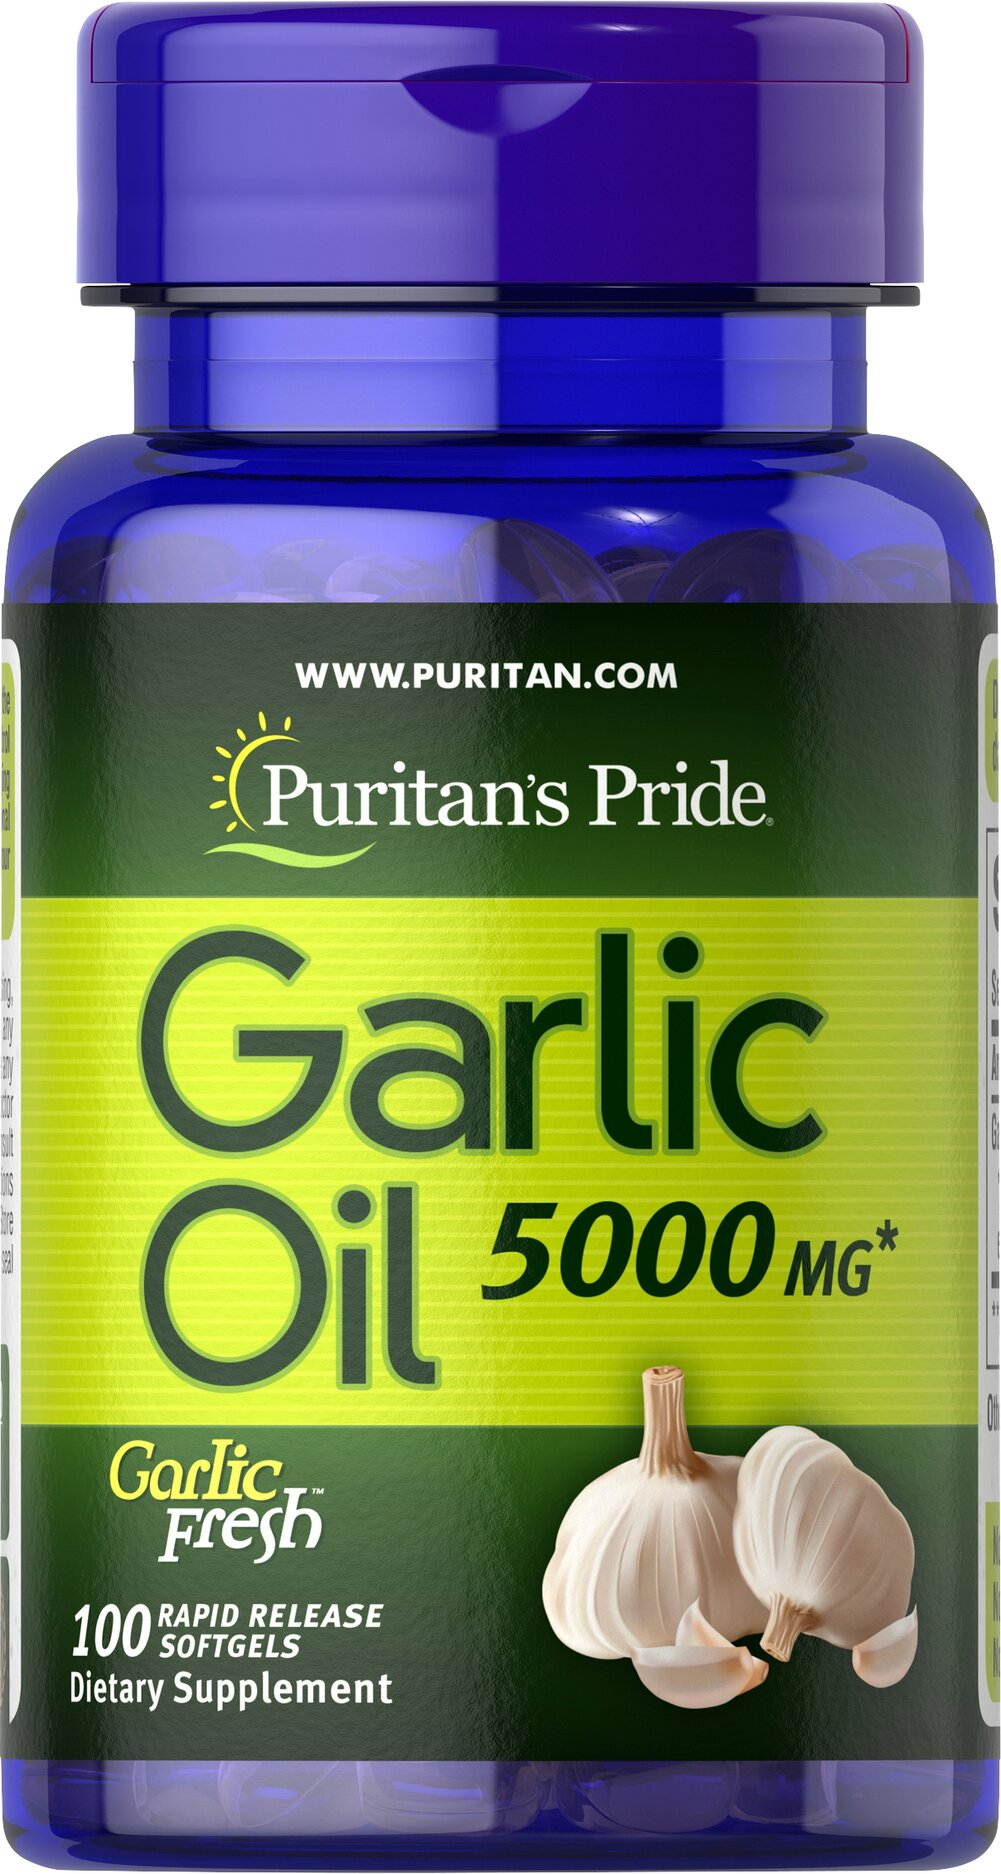 Garlic Oil 5000 mg <p>Cholesterol Support**</p><p>Supports Cardiovascular Health**</p><p>Whether warding off evil spirits or flavoring sauces, Garlic has been known for its beneficial qualities. Natural ingredients in Garlic include alliin, allinase and allicin. Garlic promotes cardiovascular health and helps to maintain cholesterol levels that are already within the normal range.**</p> 100 Softgels 5000 mg $8.99